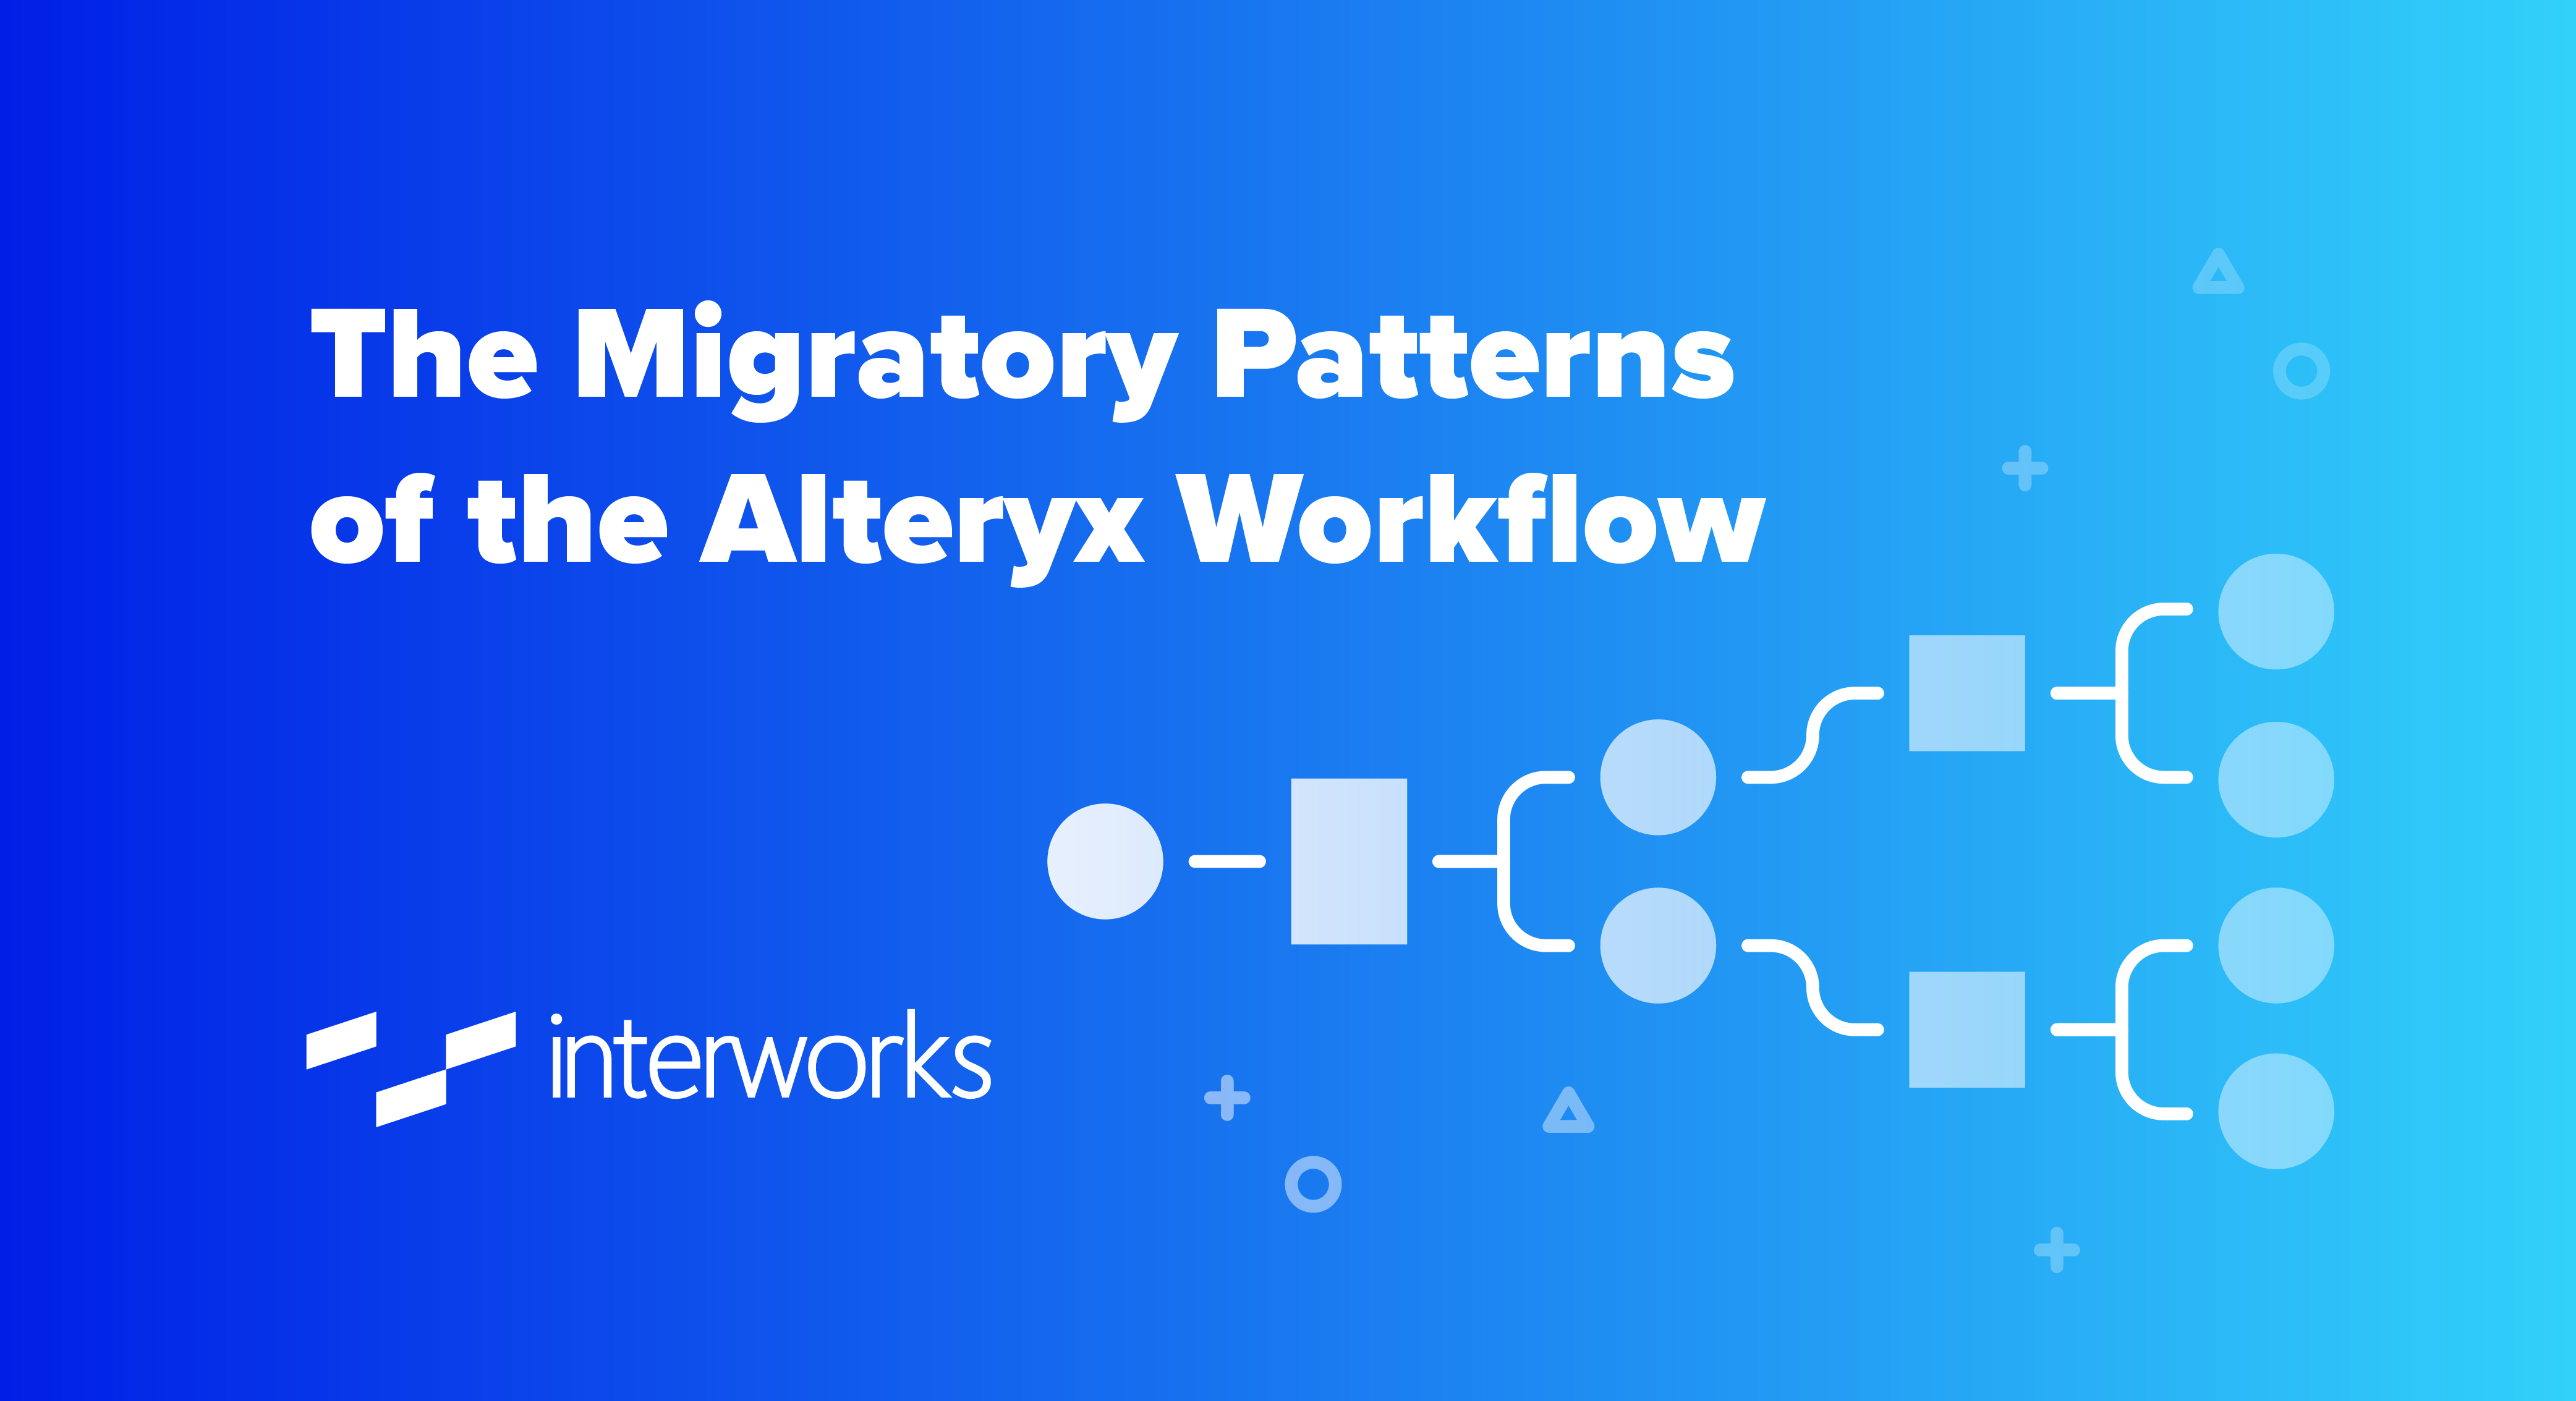 The Migratory Patterns of the Common Alteryx Workflow